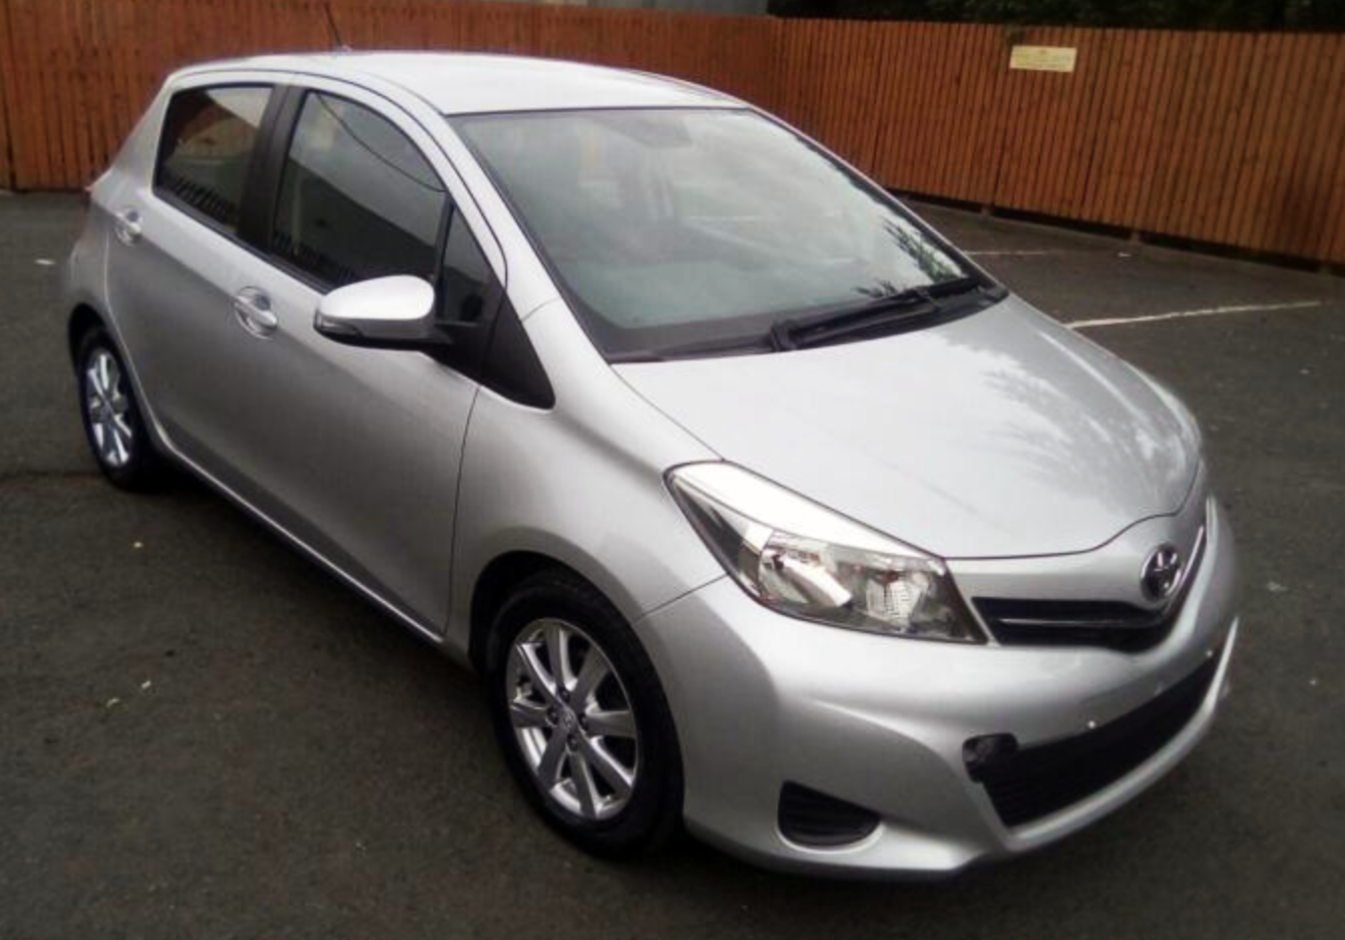 Picture of John's 2012 Toyota Yaris